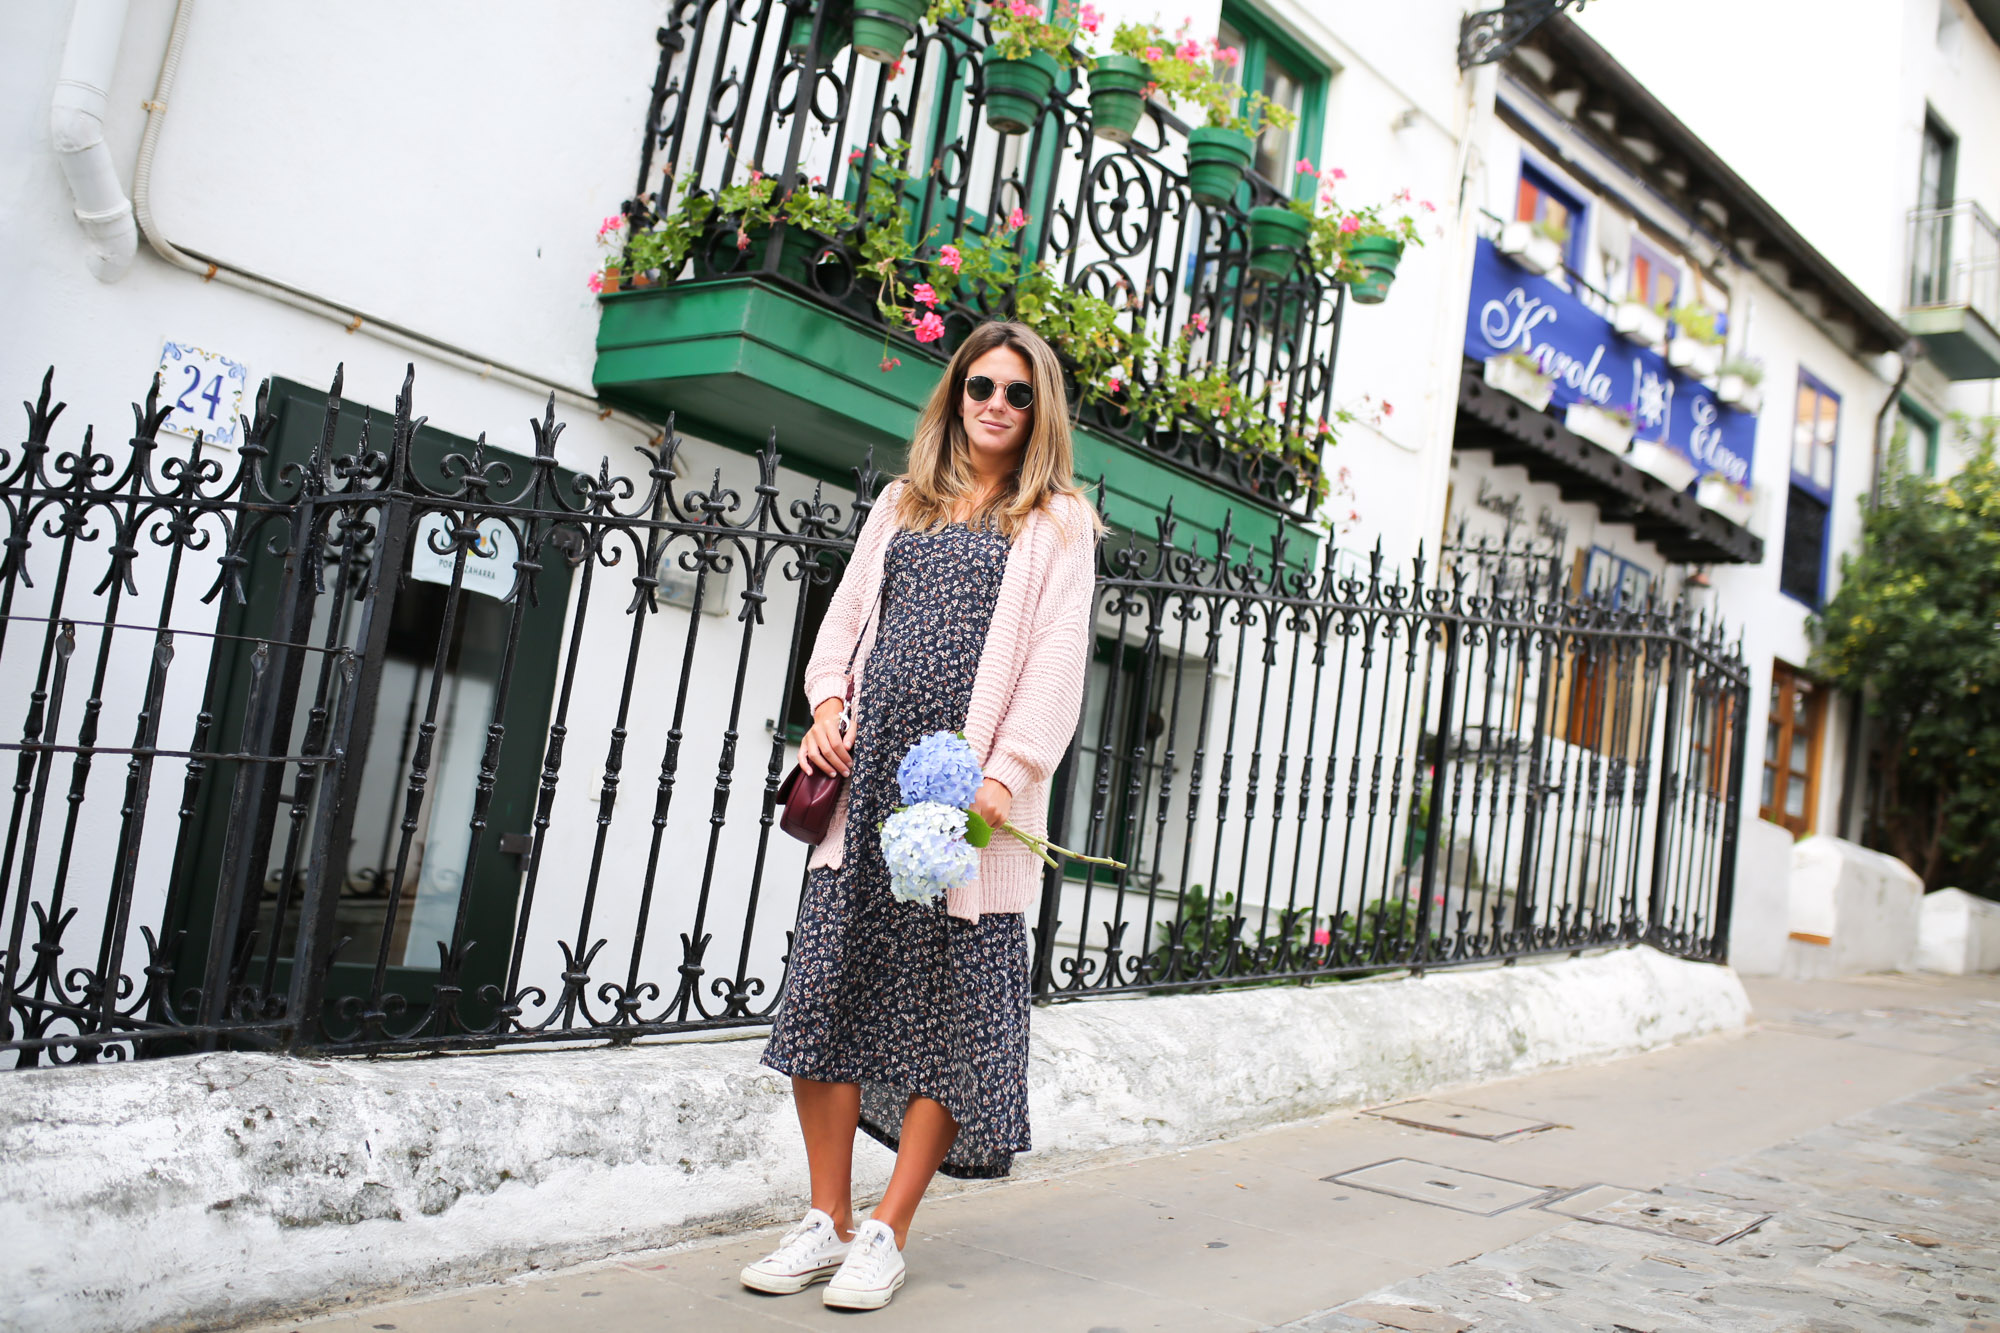 Clochet_streetstyle_fashionblogger_eseoese_flowerprintmididress_converse_americanvintage_pinkknit-6